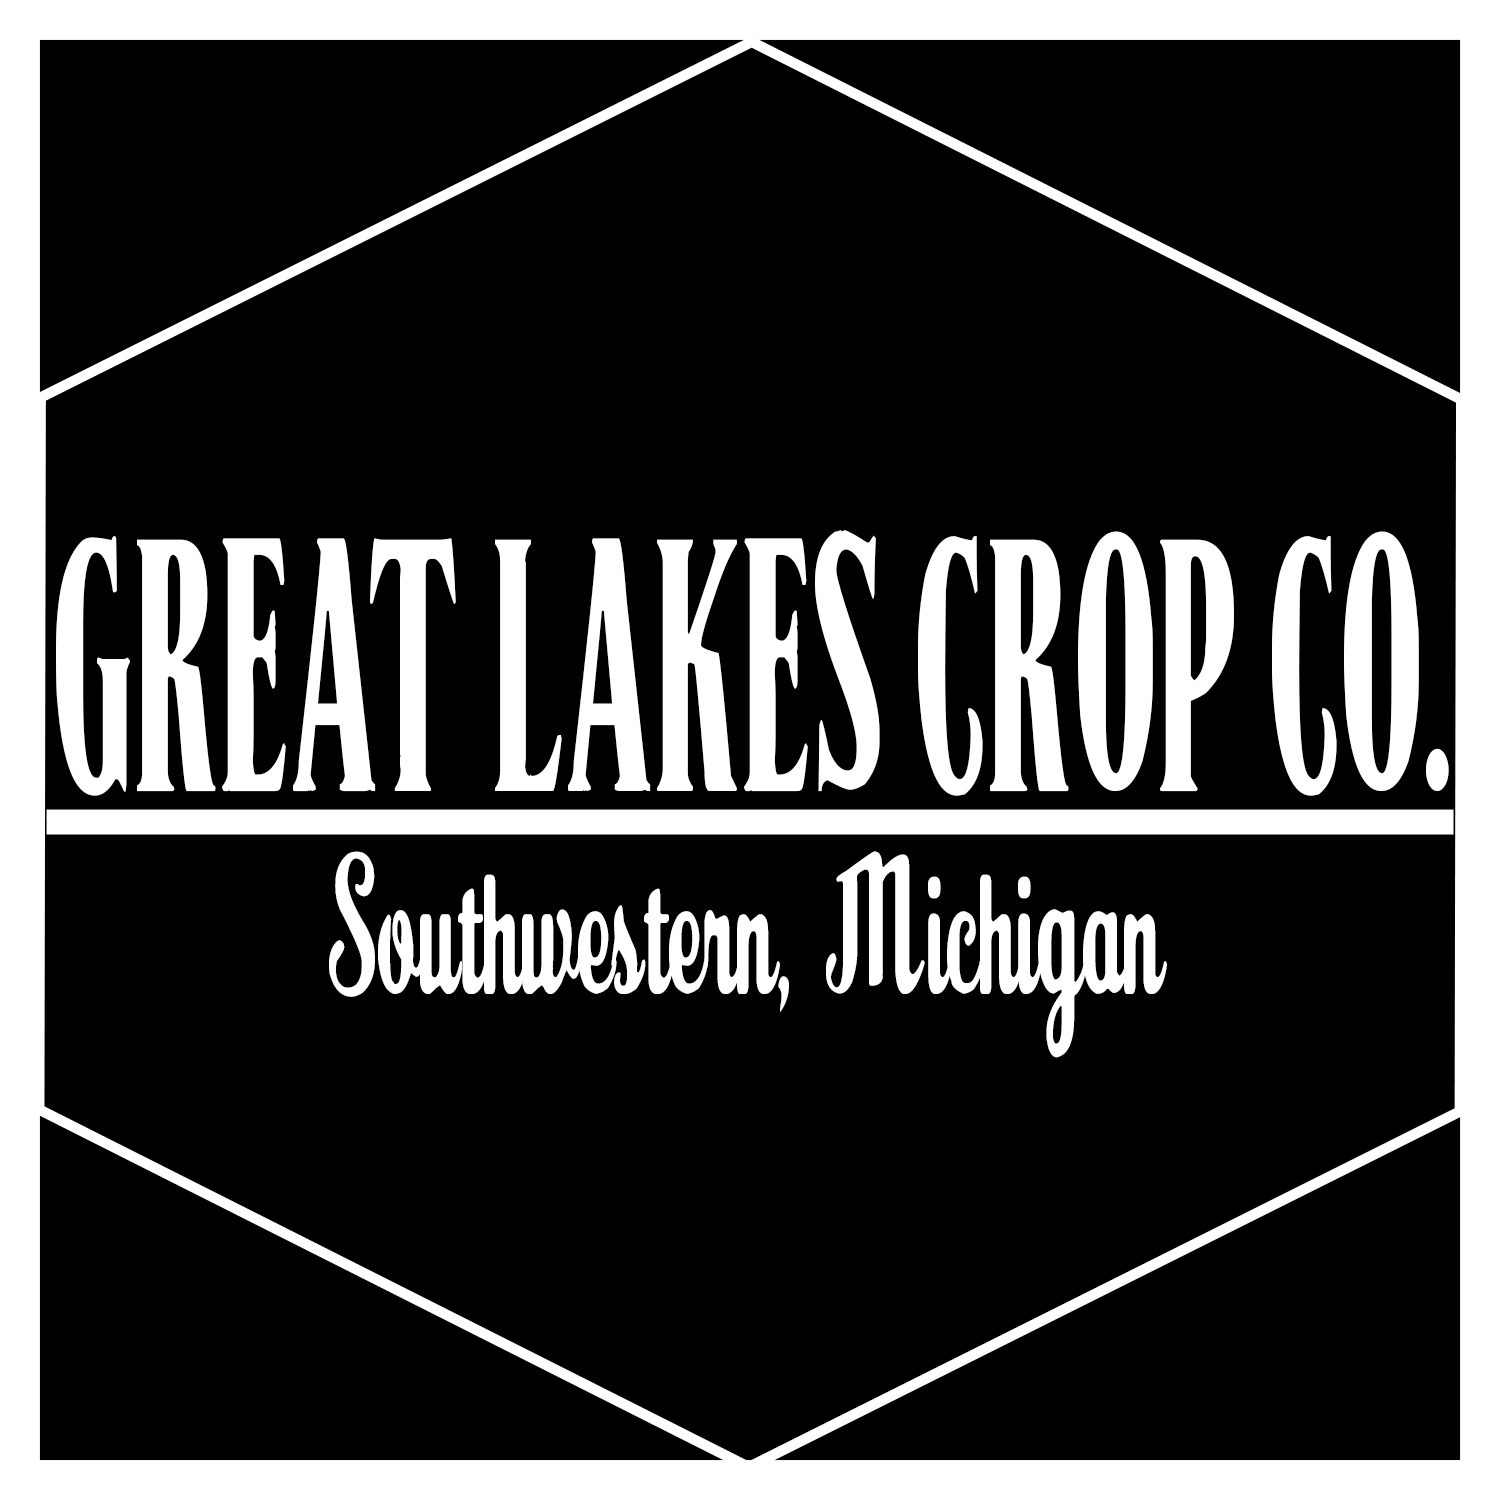 Get your mmmp card great lakes crop co great lakes crop co 1betcityfo Images